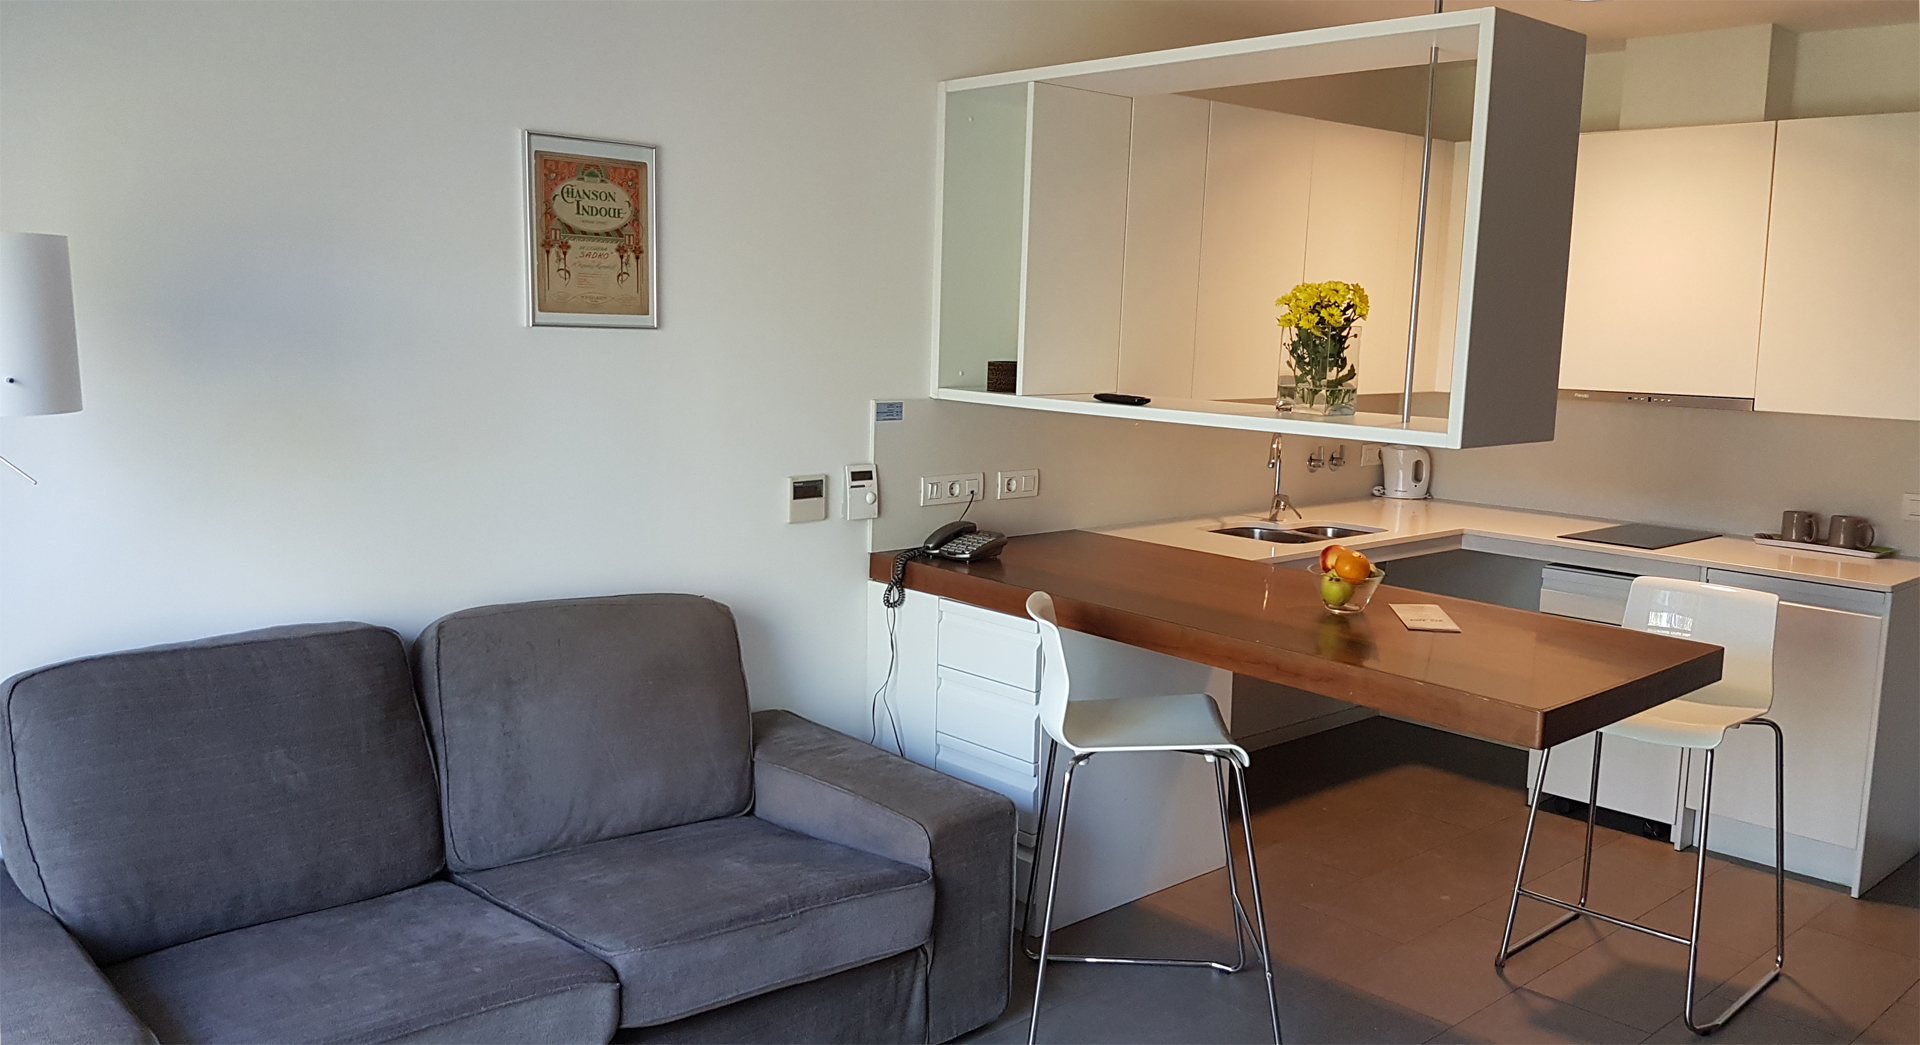 mics-sant-jordi-apartment-livingroom-kitchen-accessible